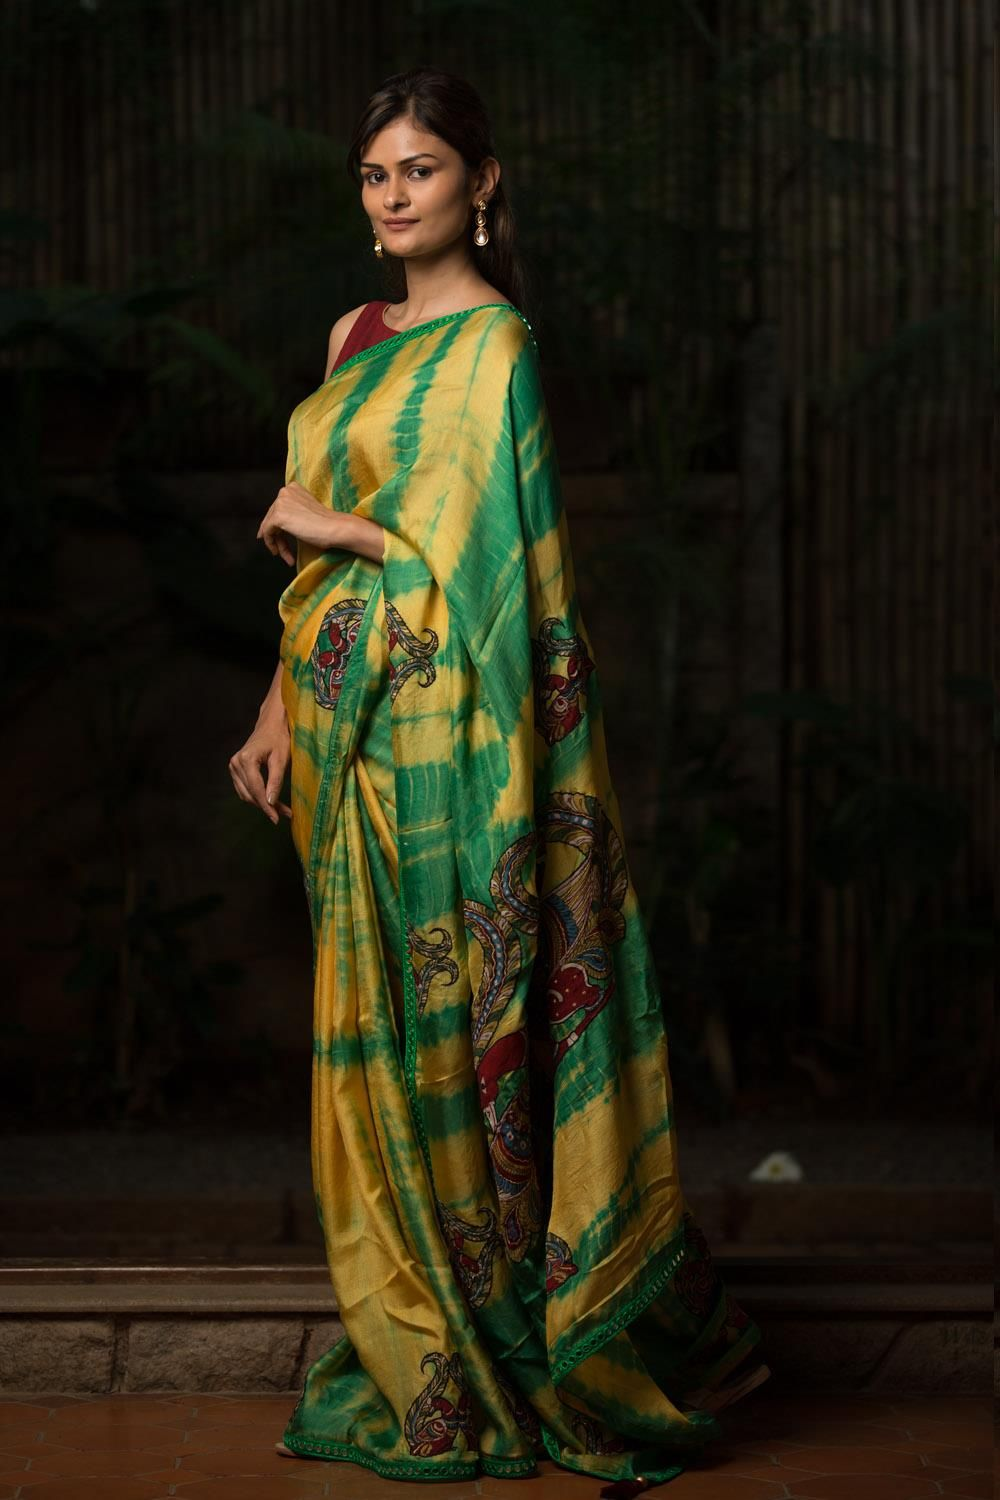 0d6c453ae2 Green and yellow shibori shaded jute georgette saree with mirror work  border and handpainted kalamkari appliques #saree #blouse #houseofblouse  #indian ...